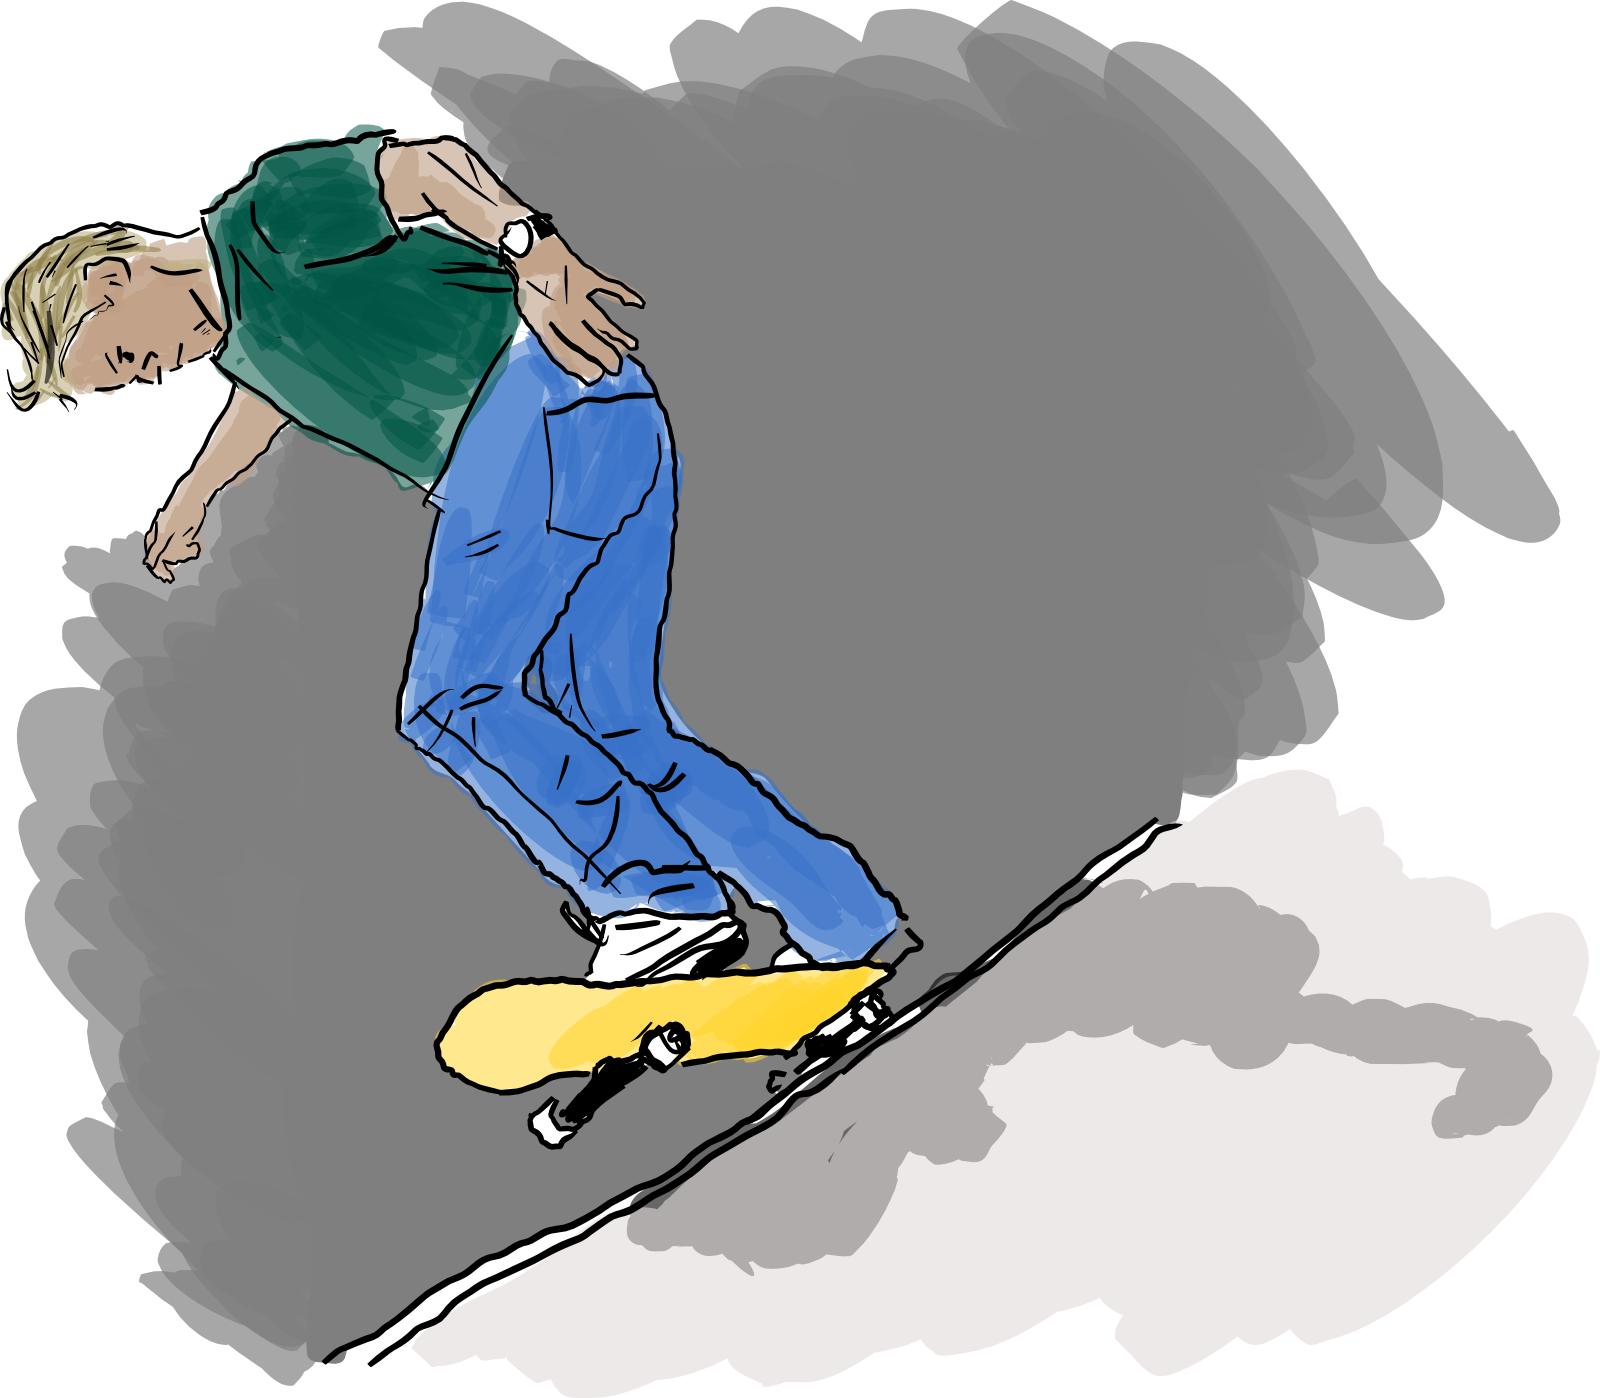 Drawing of a skate boarder